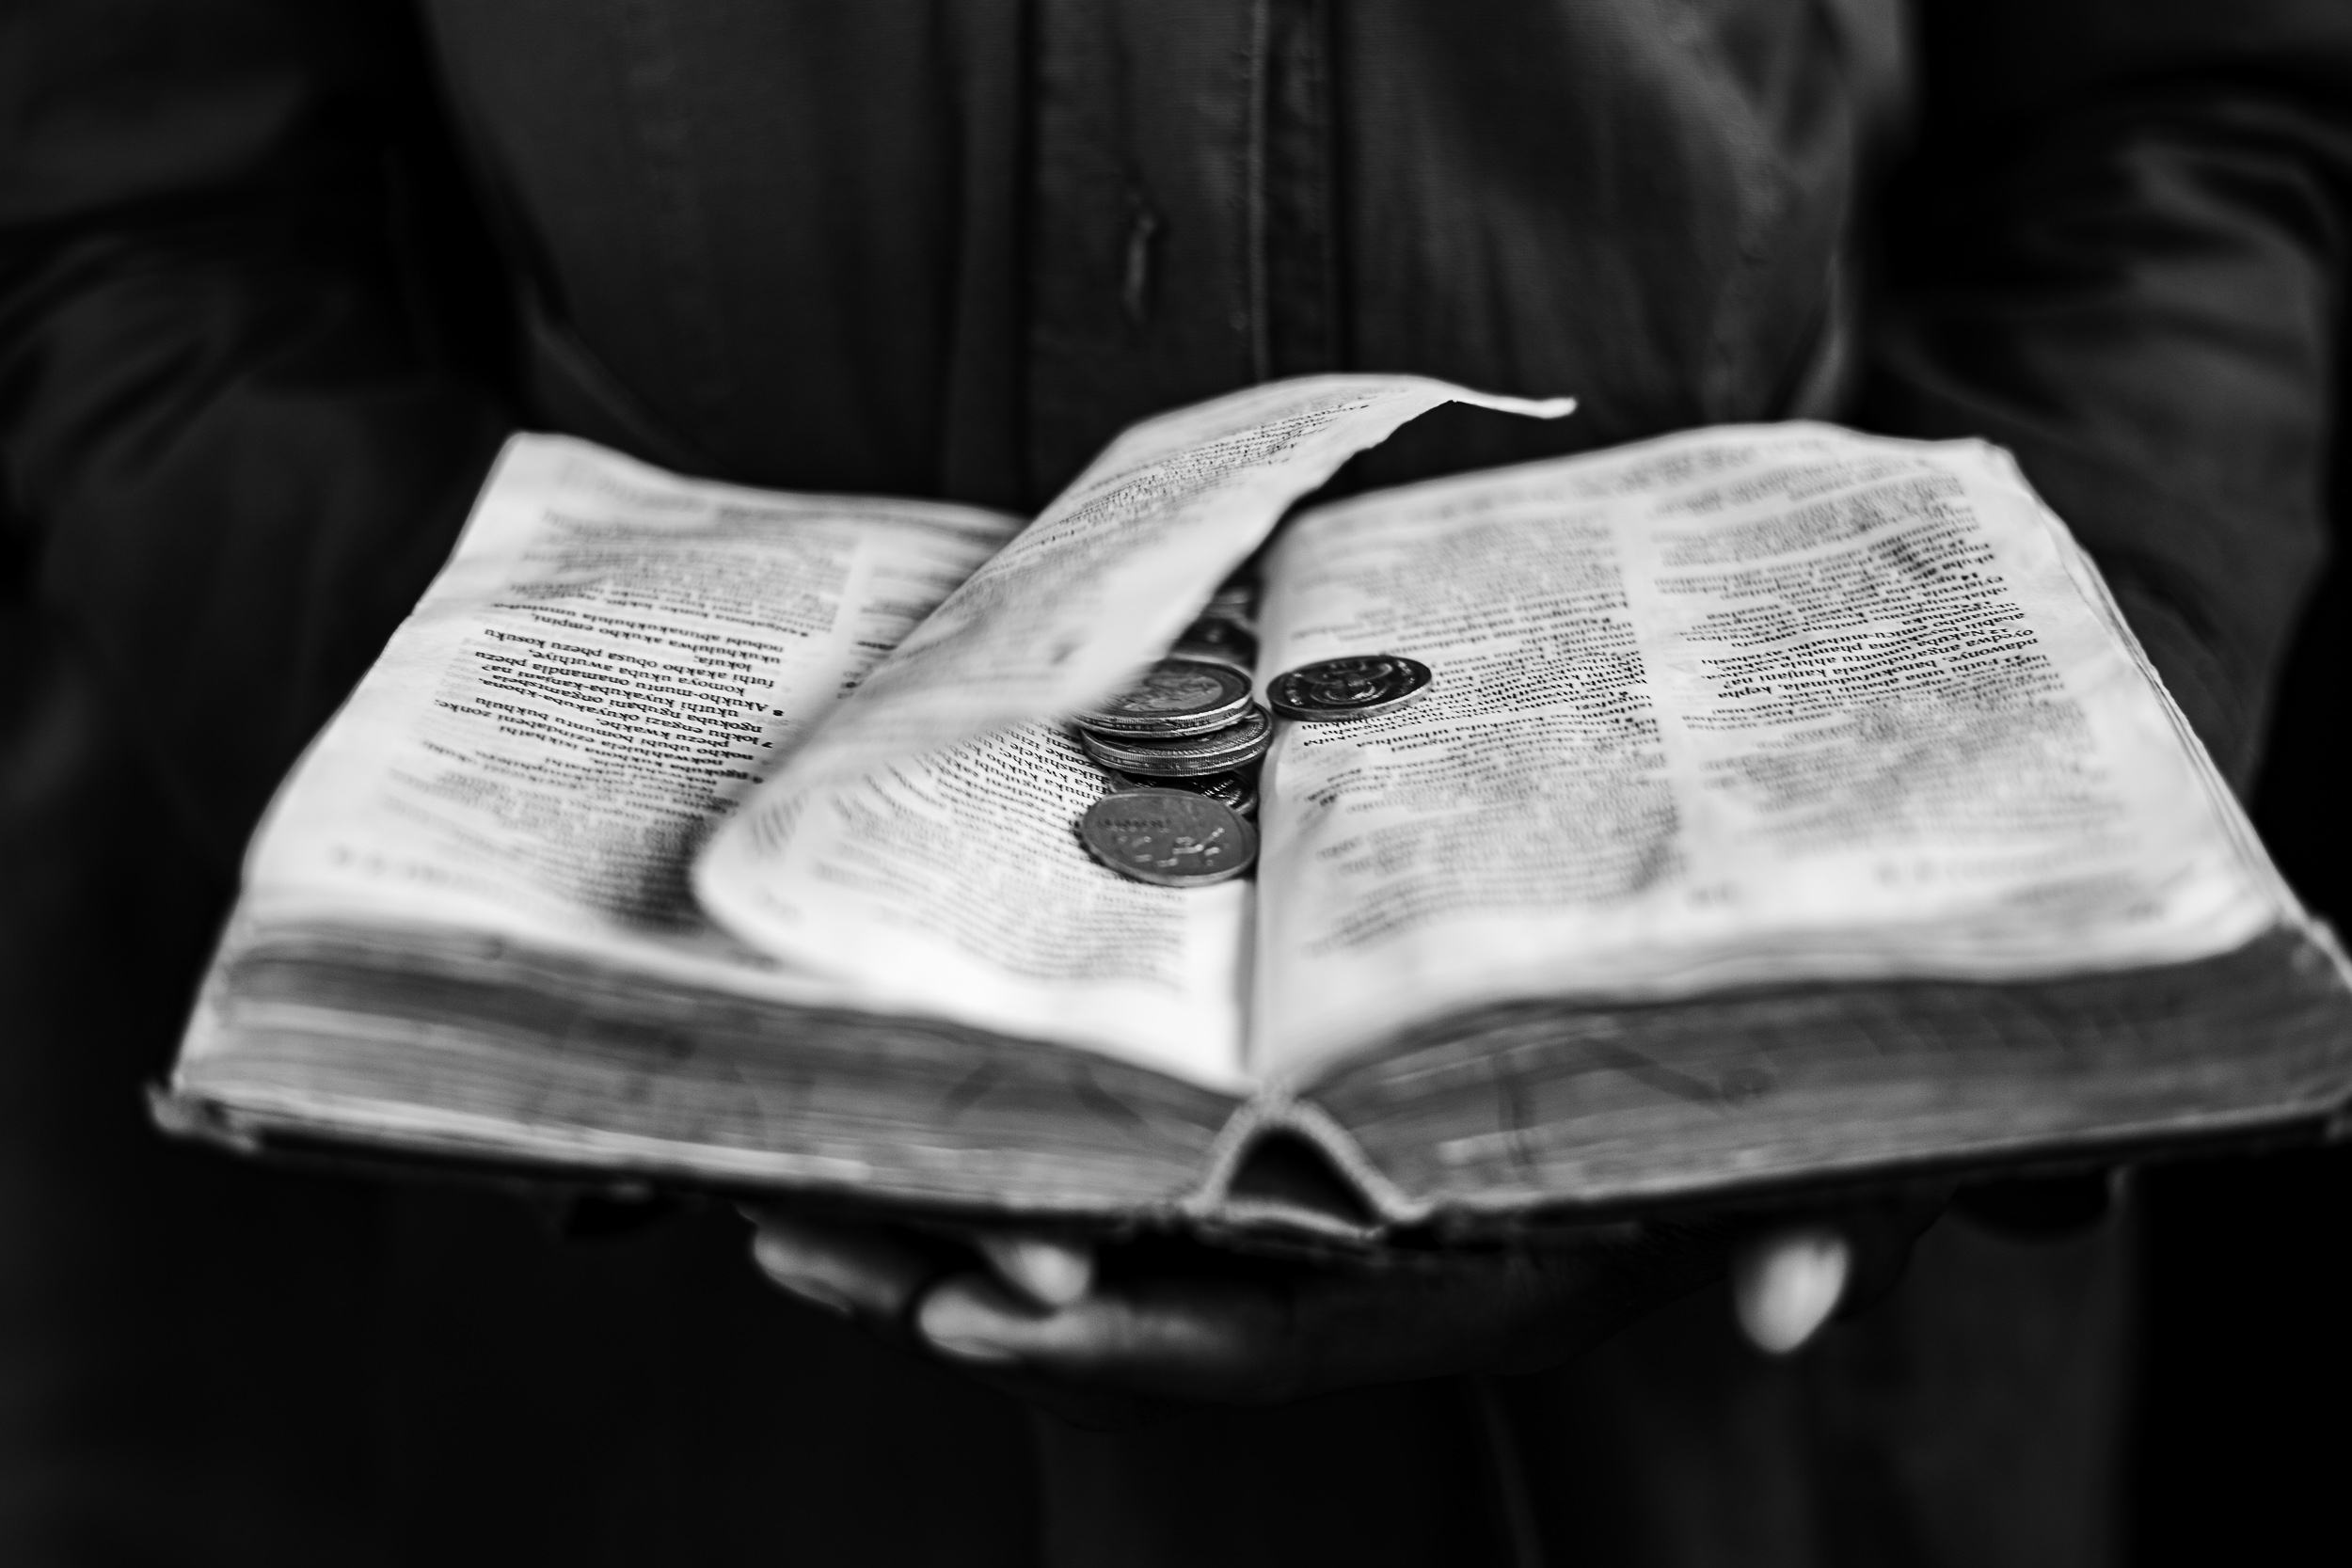 Undated: Okweshumi – Coins are placed on a Bible as tithes at the Ukuphila KwamaKrestu church.